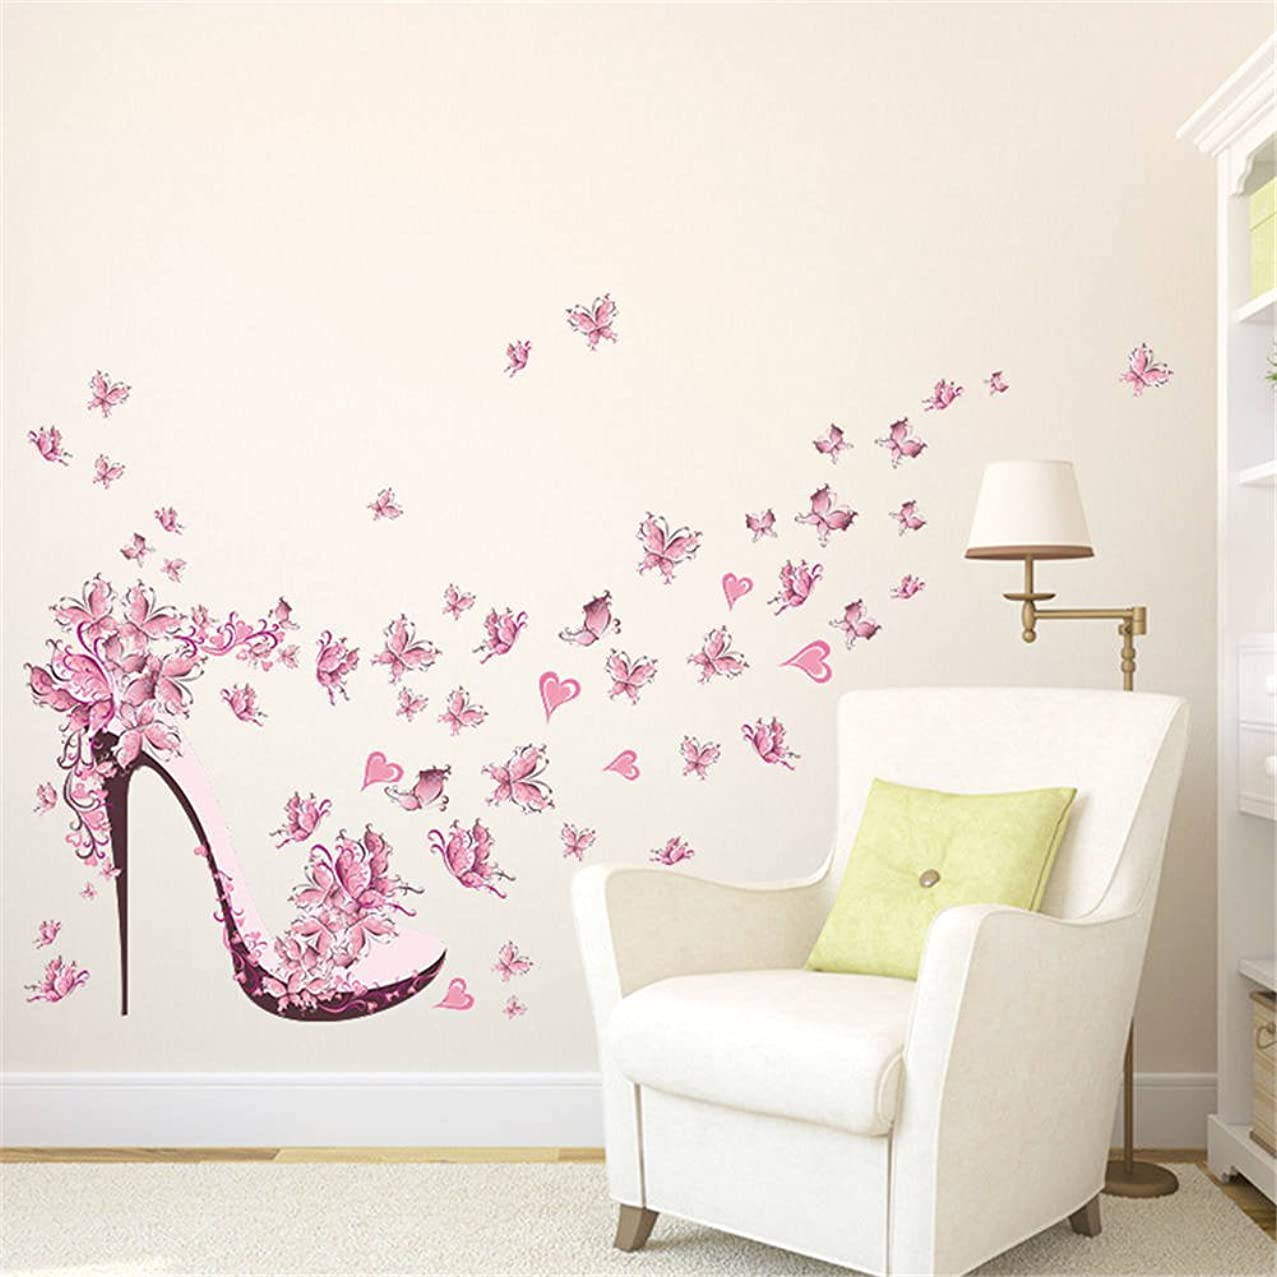 BIBITIME High-heeled Shoes Wall Art Valentine's Day Heart Butterfly Wall Sticker for Women Bedroom Living Room Background PVC Decorations Kids Room Decor Art Mural